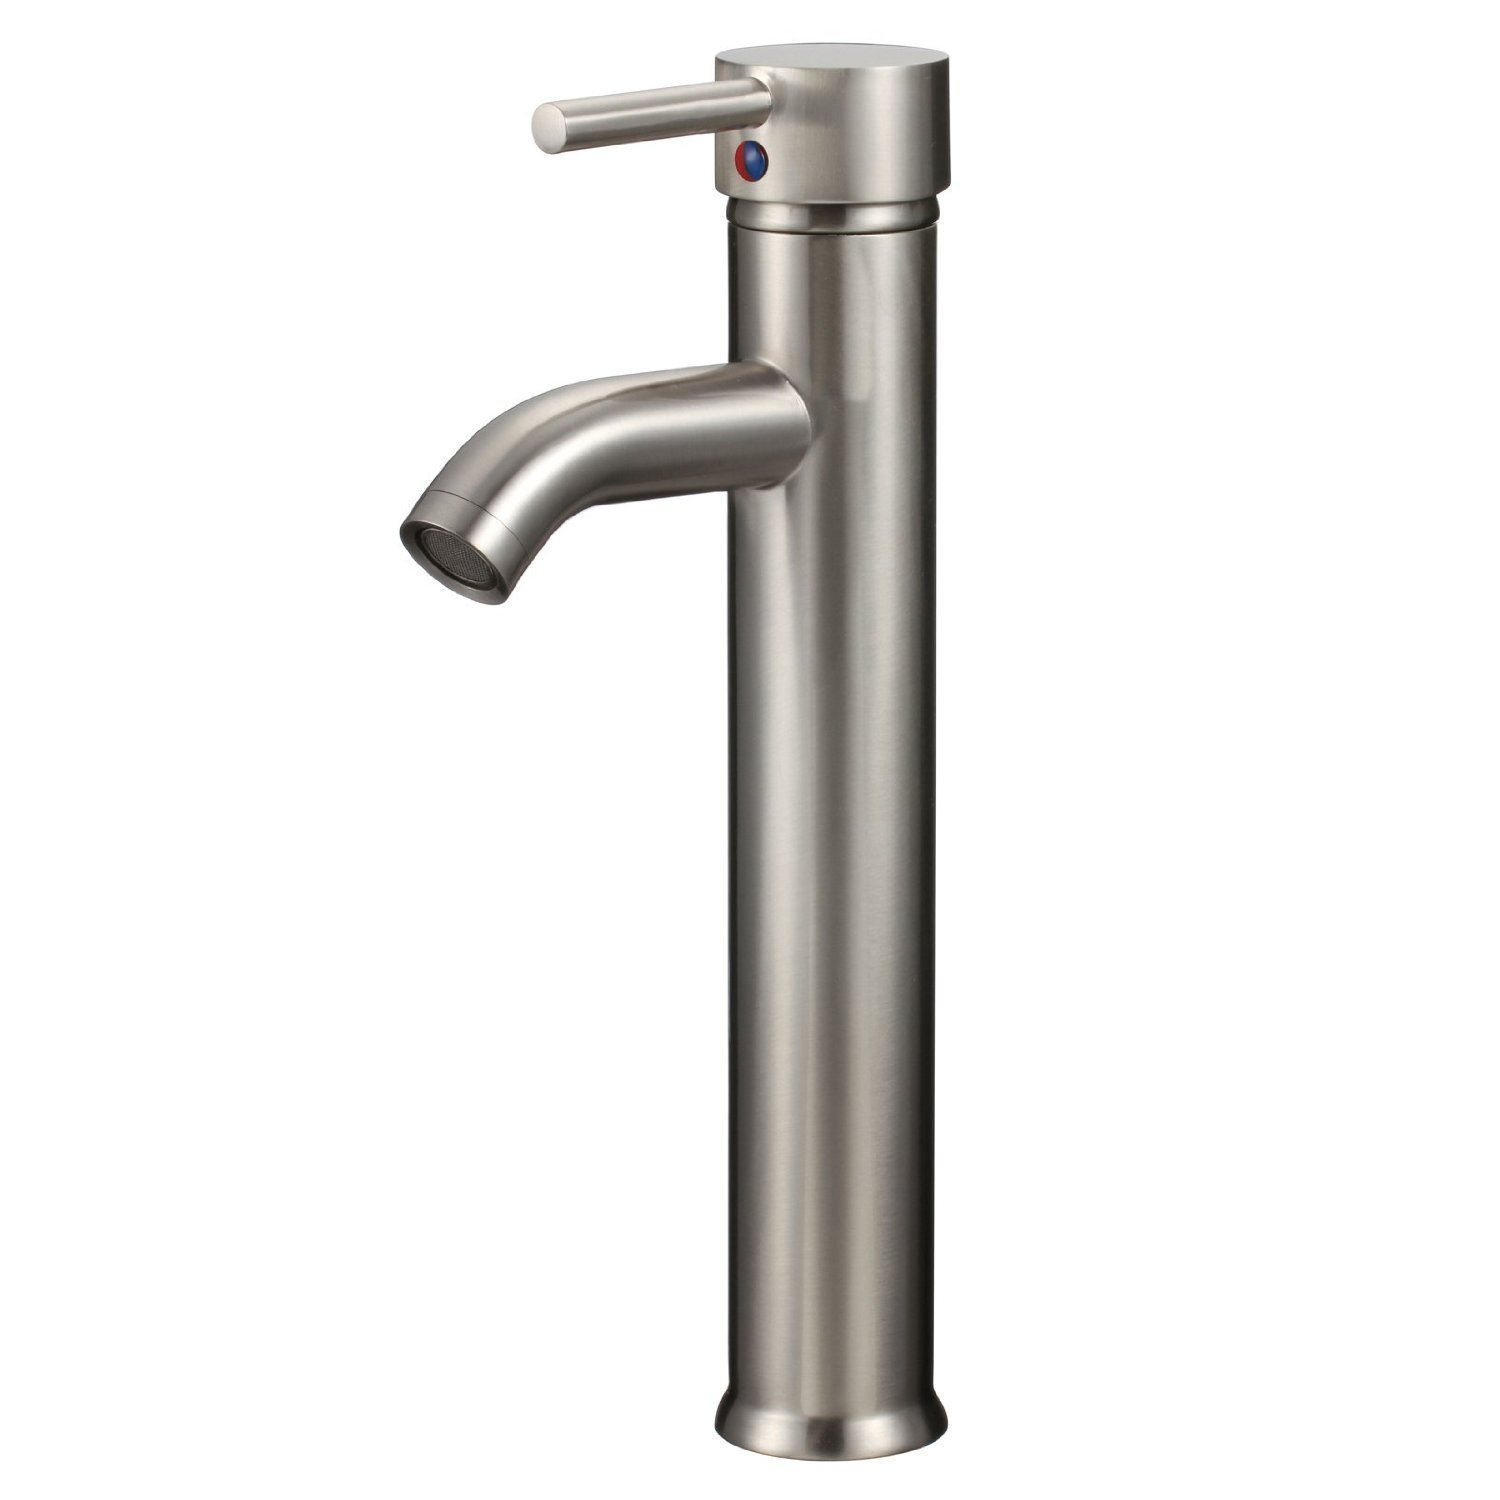 yodel vessel bathroom sink faucet brushed nickel